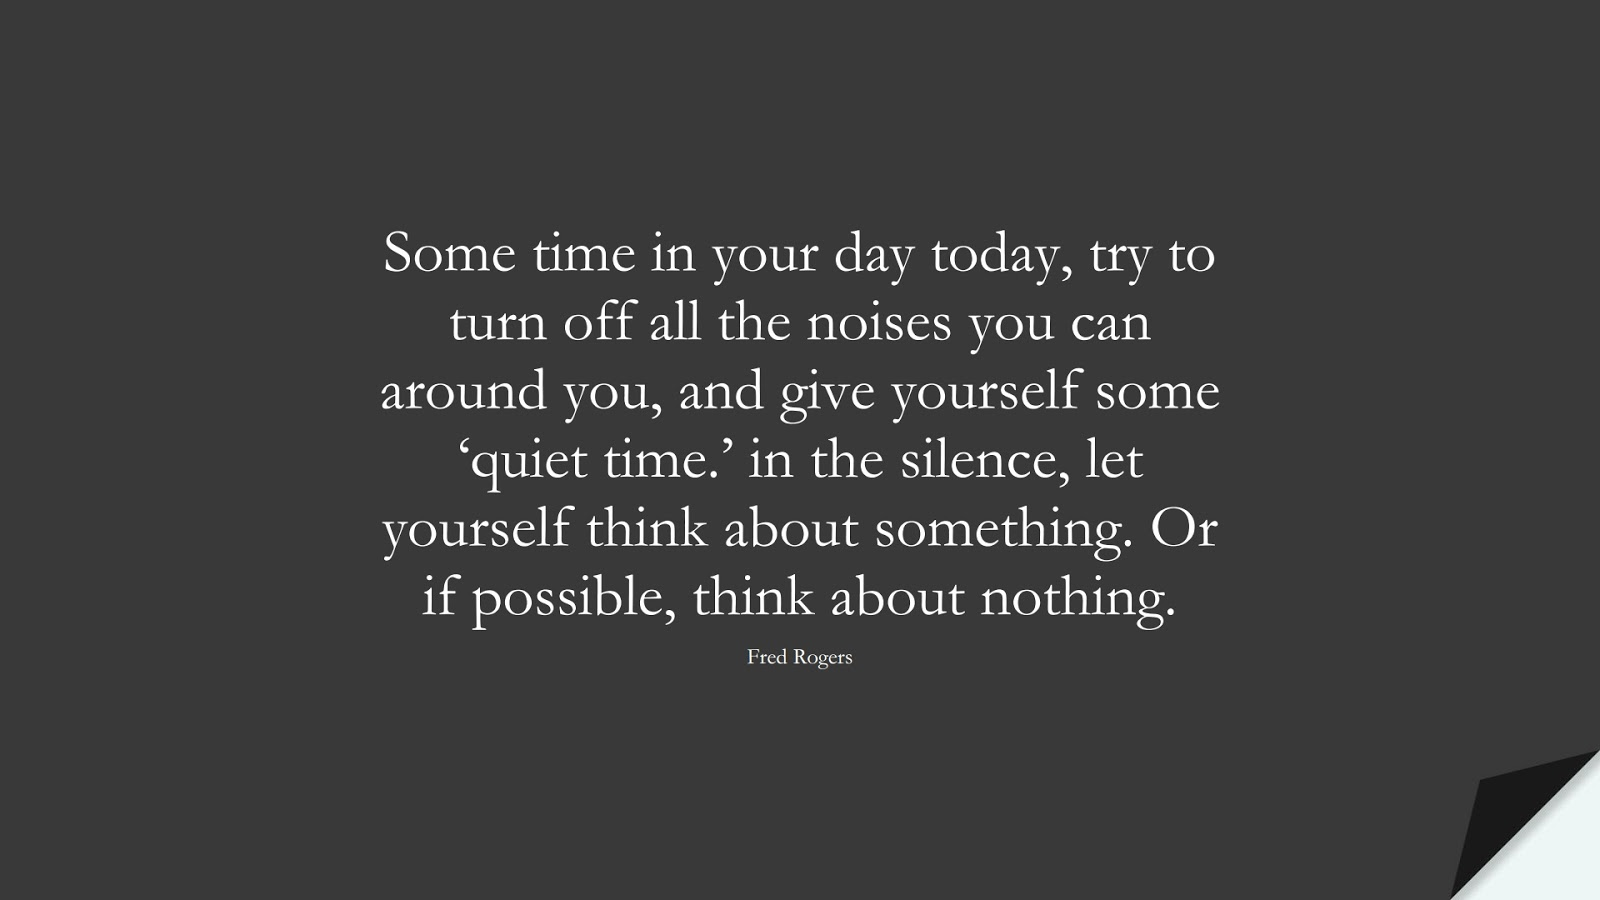 Some time in your day today, try to turn off all the noises you can around you, and give yourself some 'quiet time.' in the silence, let yourself think about something. Or if possible, think about nothing. (Fred Rogers);  #CalmQuotes